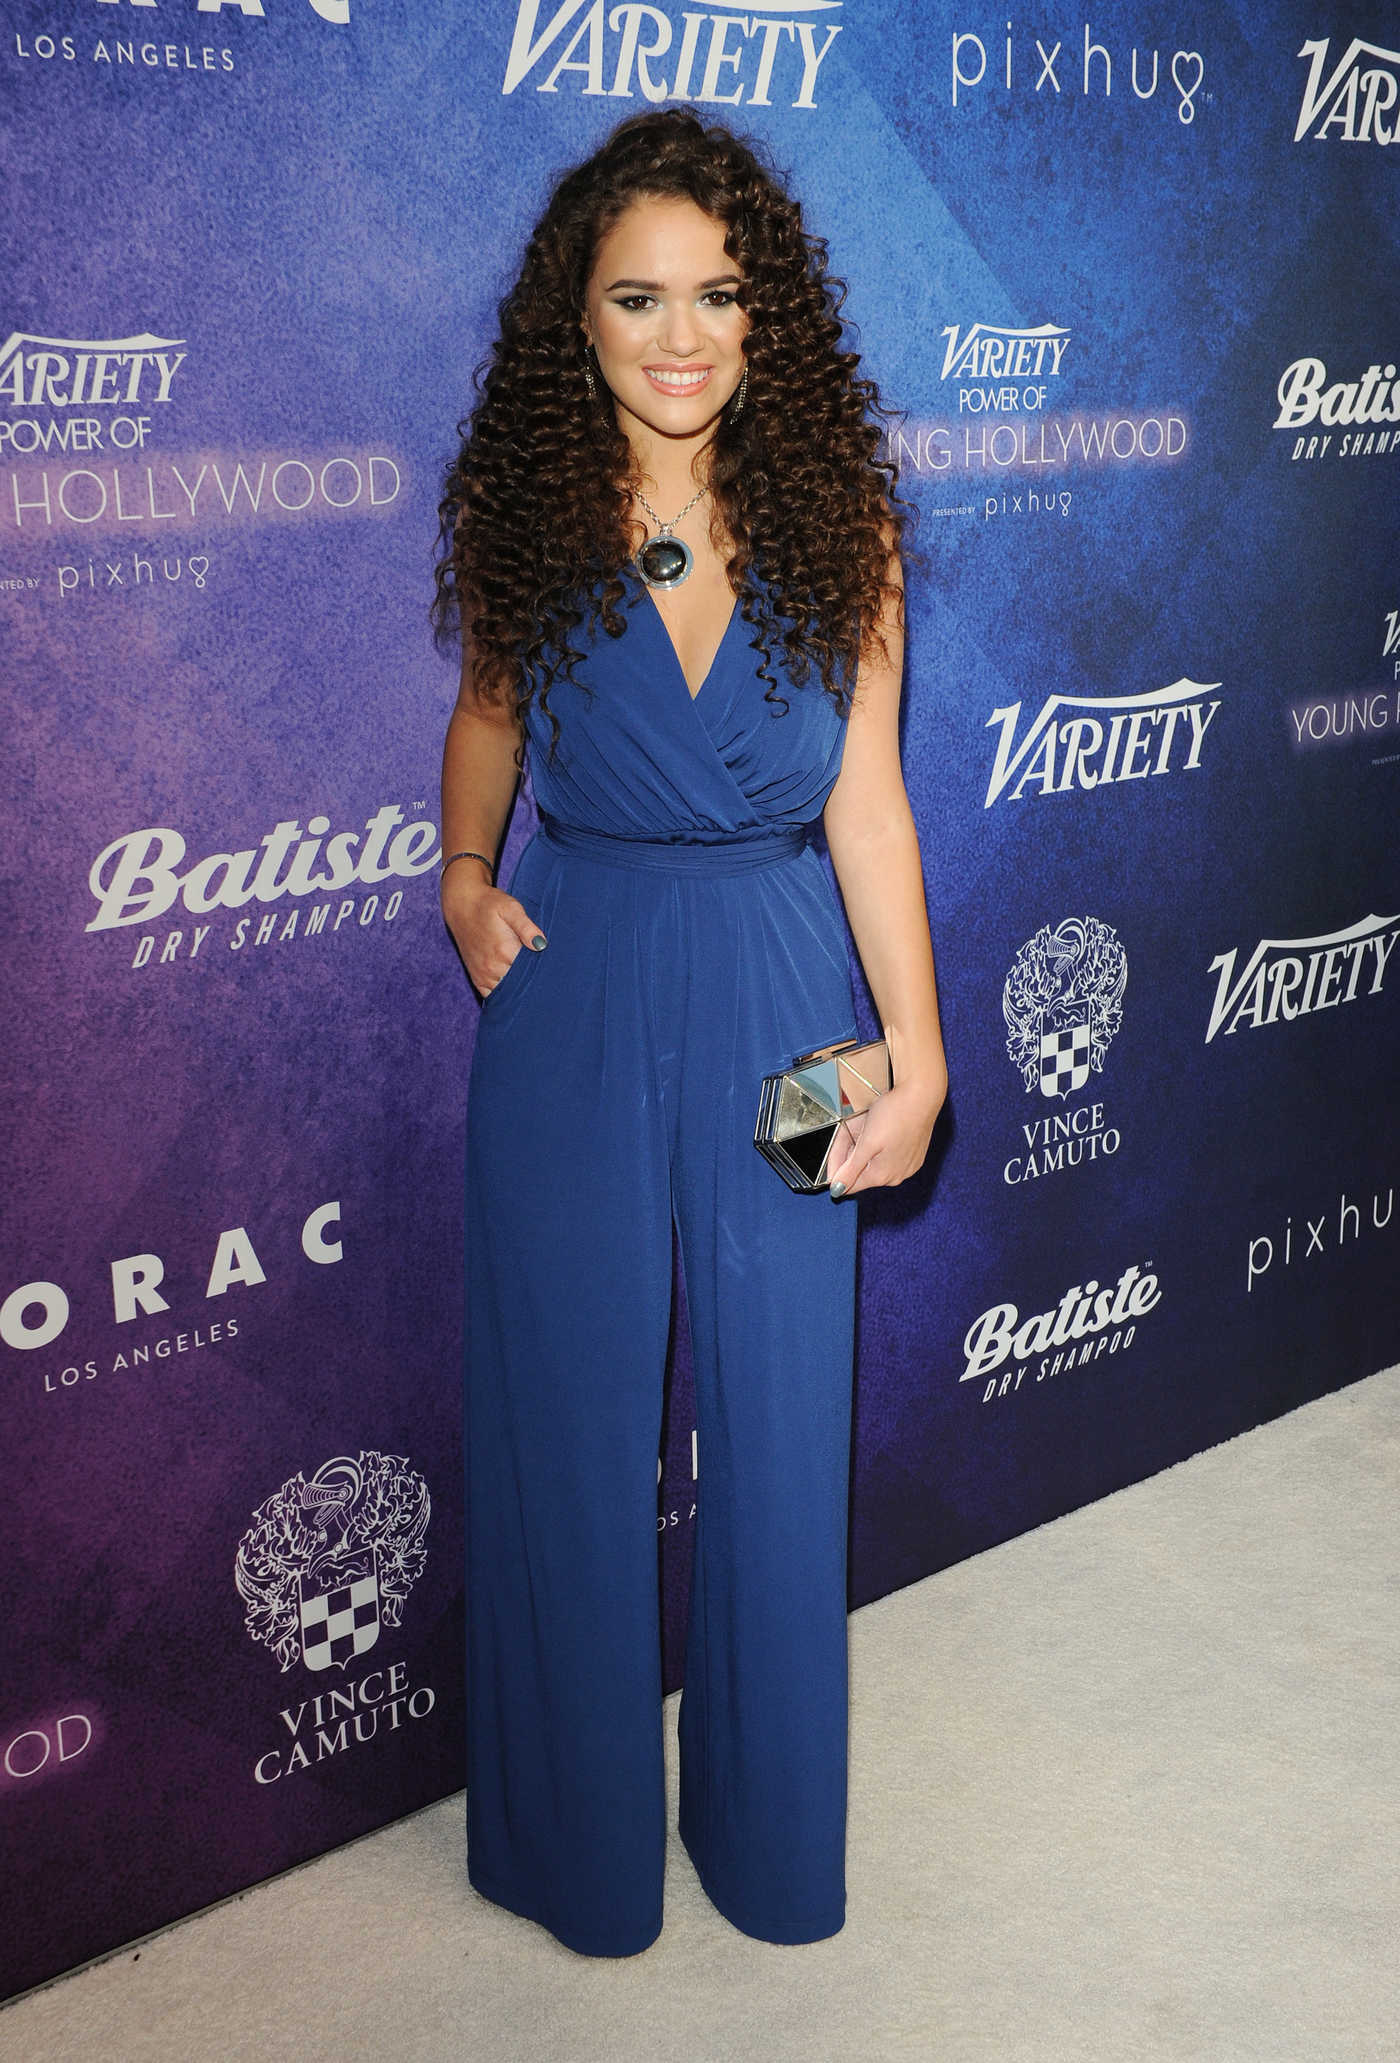 Madison Pettis at Variety's Power of Young Hollywood Presented by Pixhug in Los Angeles 08/16/2016